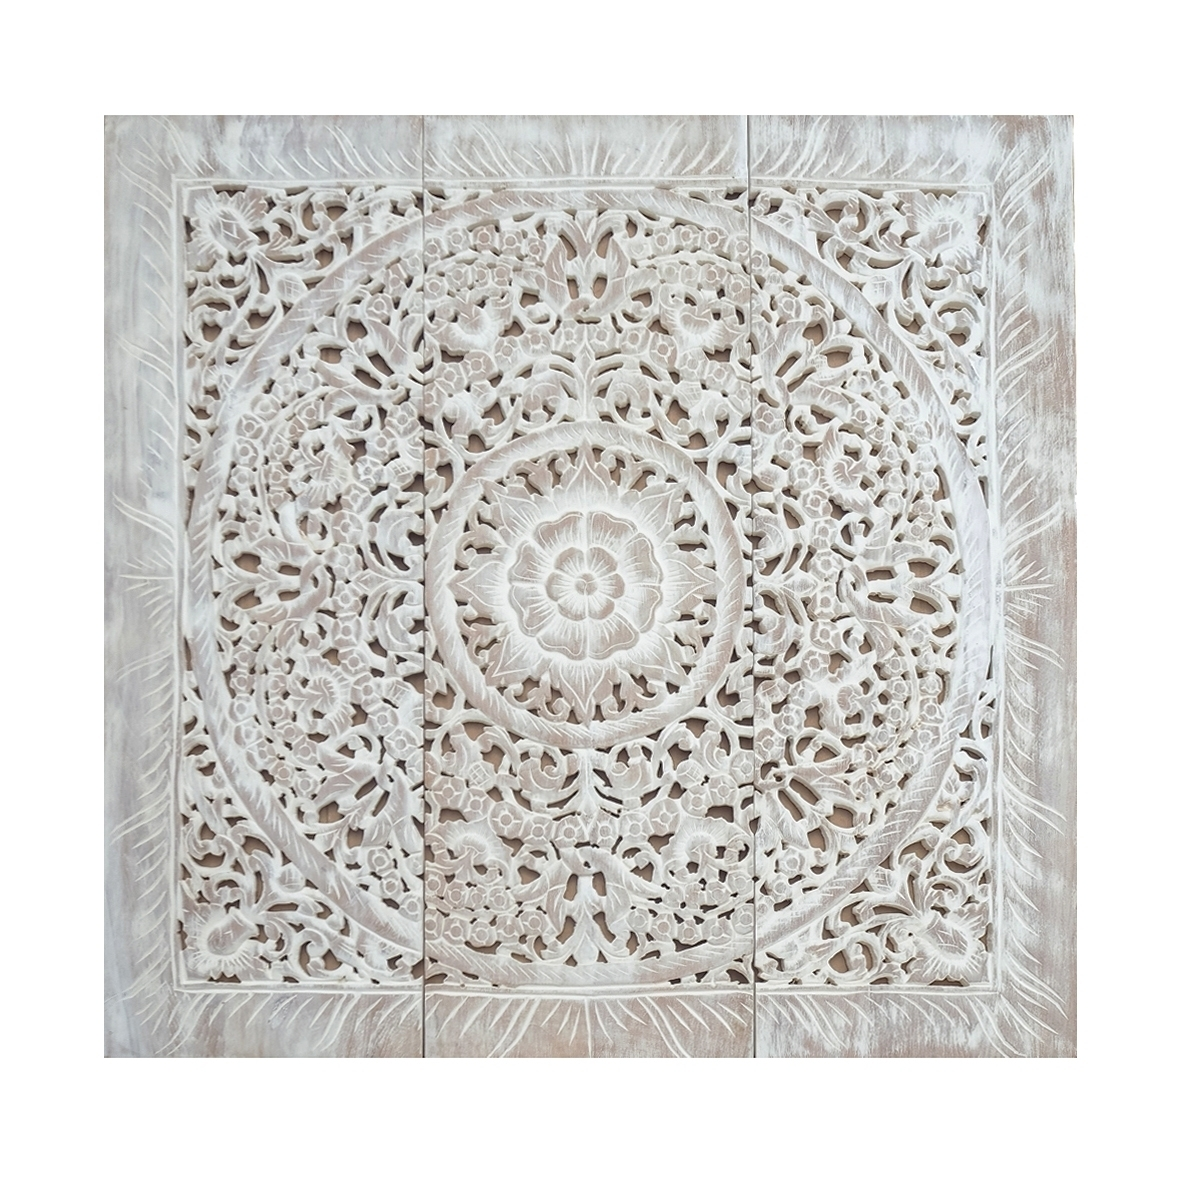 Wall Art Wood Carving 15 Photos Wood Carved Wall Art Panels – Wooden For Newest Wood Carved Wall Art (View 3 of 20)